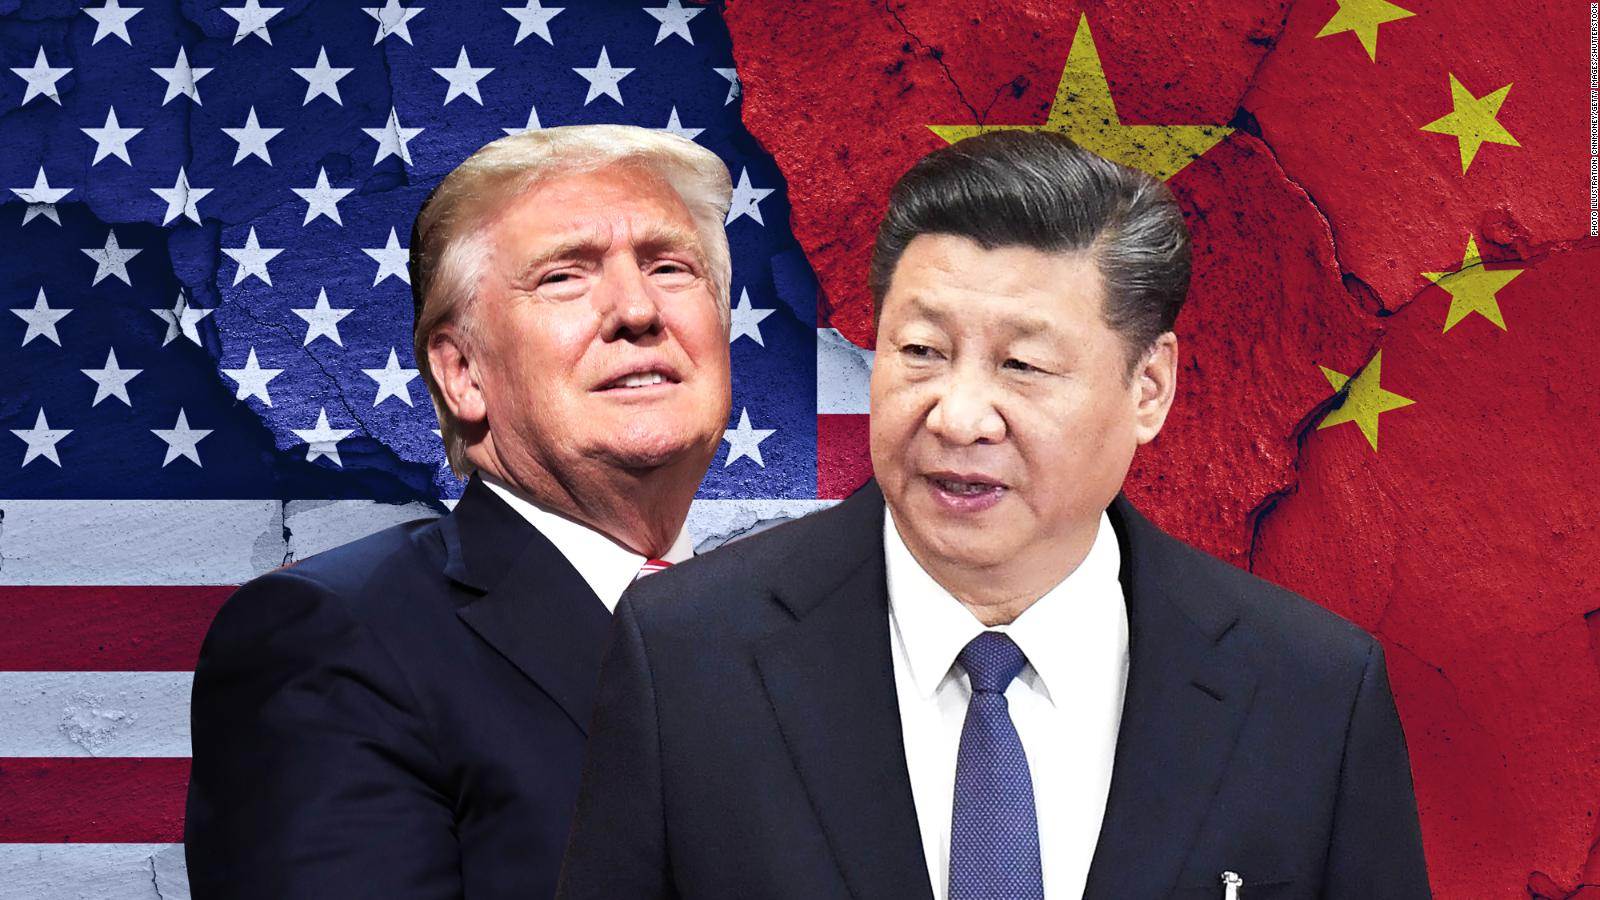 Trump y Xi Jinping: ¿al borde del precipicio? | Video | CNN